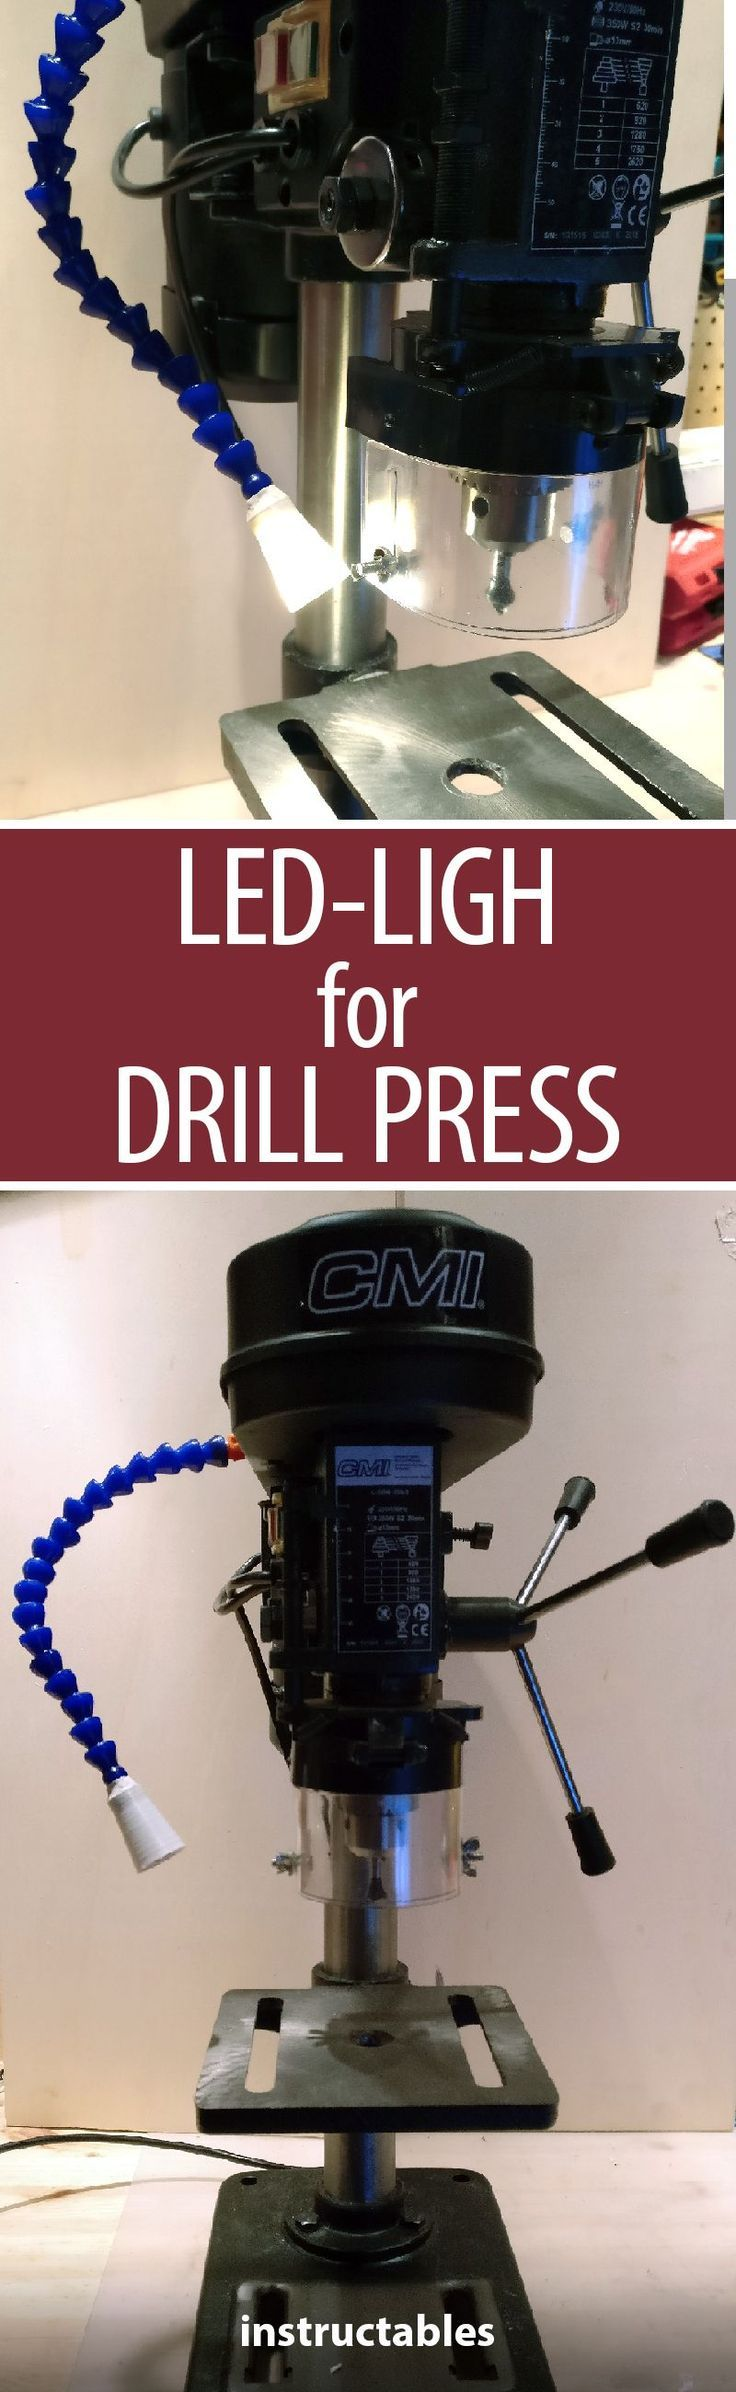 Add a handy led light to your drill press to make working